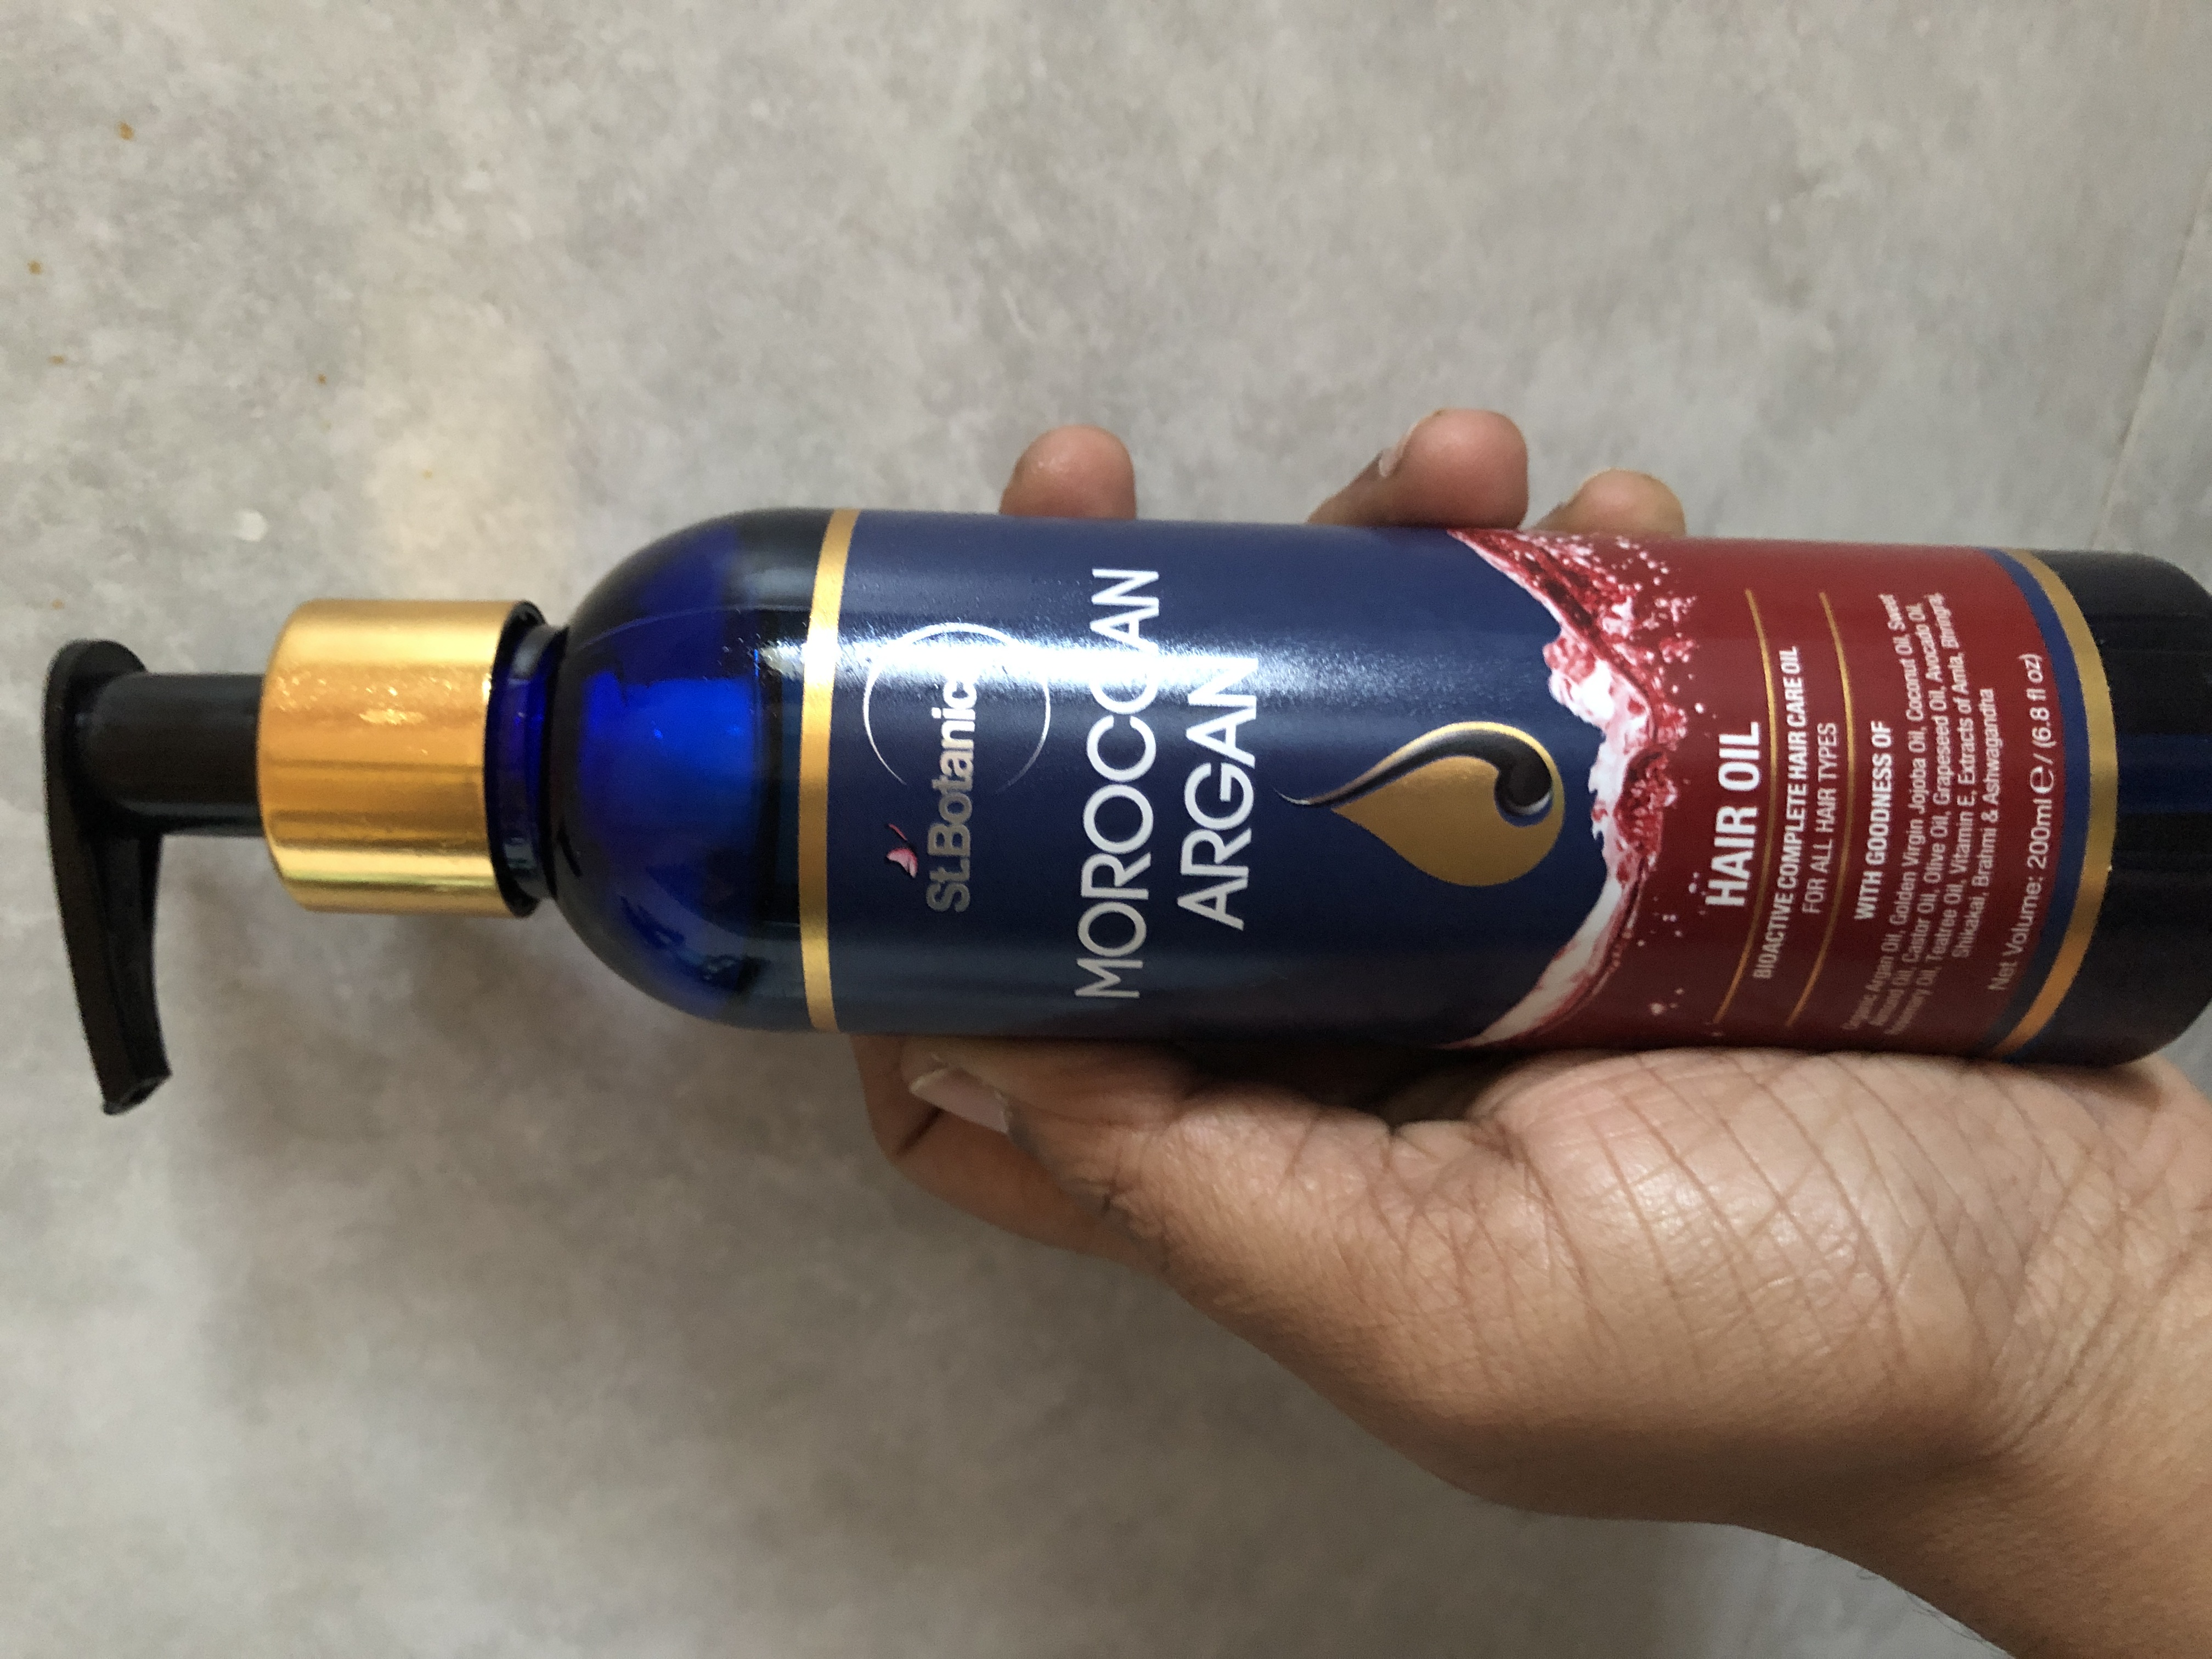 St.Botanica Moroccan Argan Hair Growth Oil-Best oil for natural hair growth-By rsairajeswari